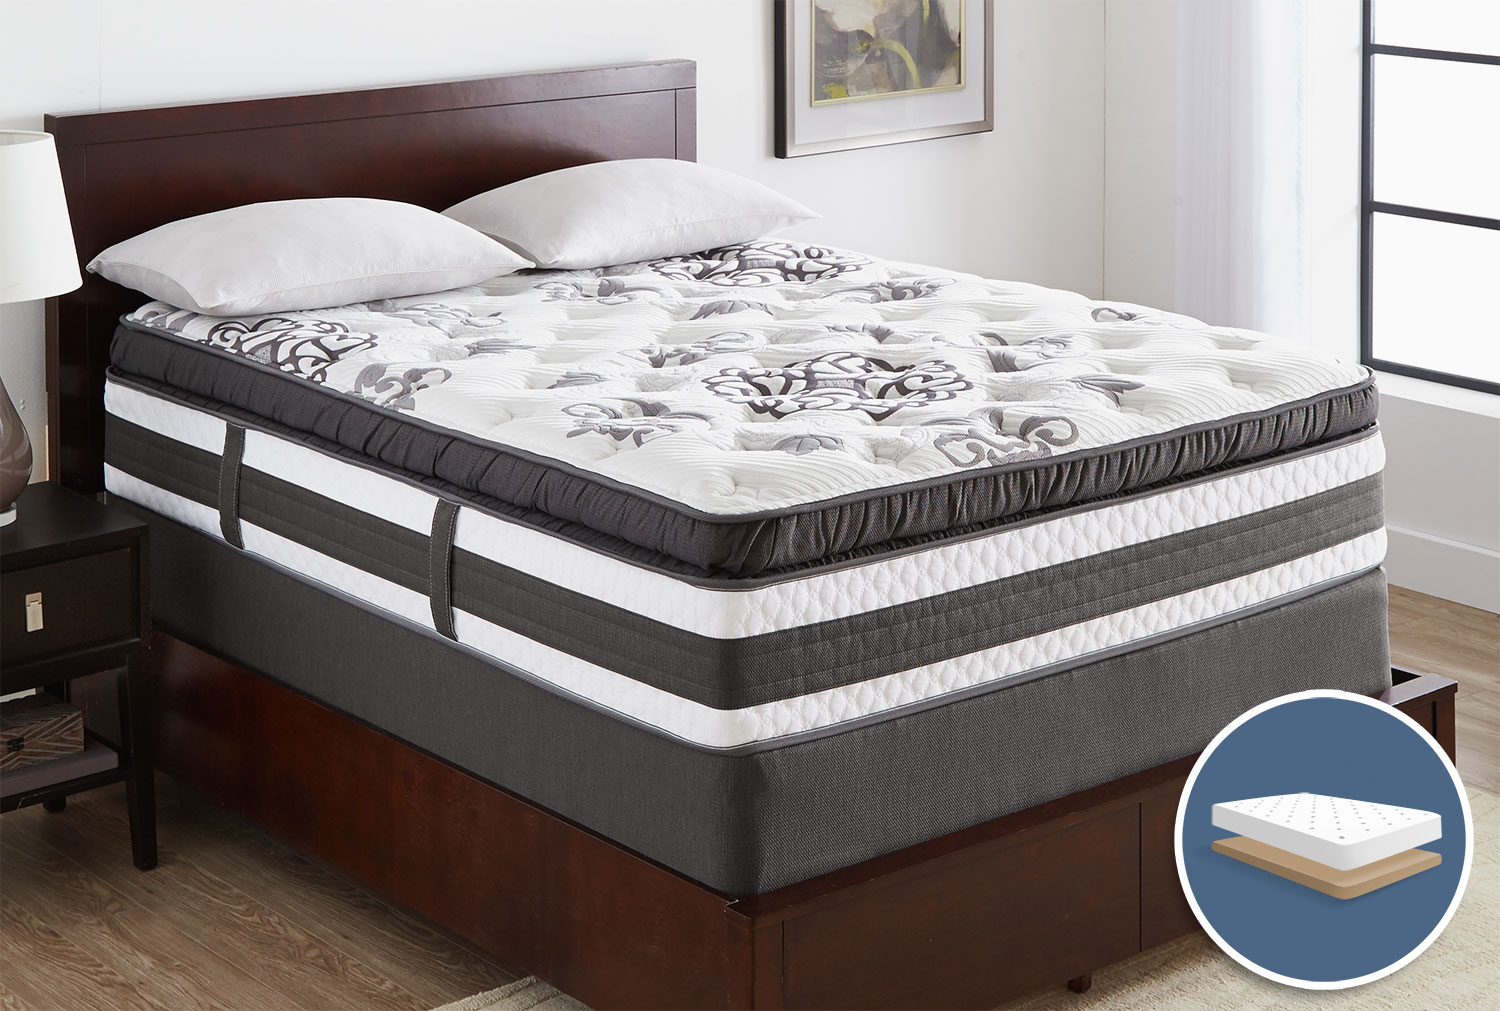 Serta iCollection Hopedale Super Pillow-Top Plush Low-Profile Queen Mattress Set